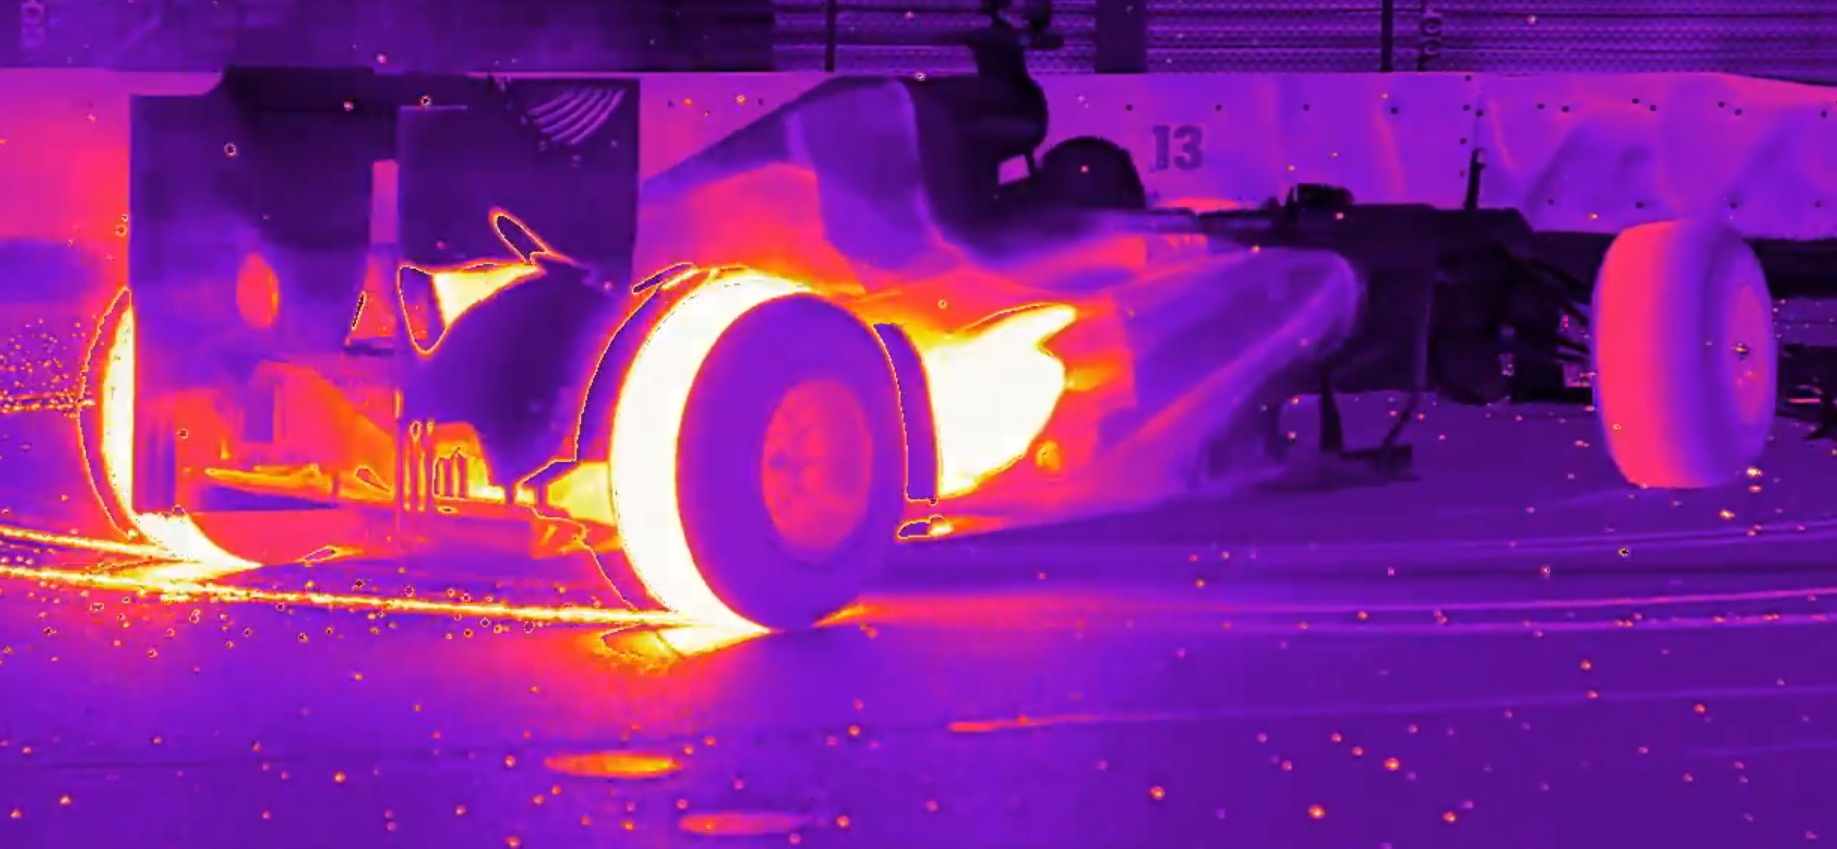 F1 Car Doing Donuts, the Thermal Camera Hot View ...